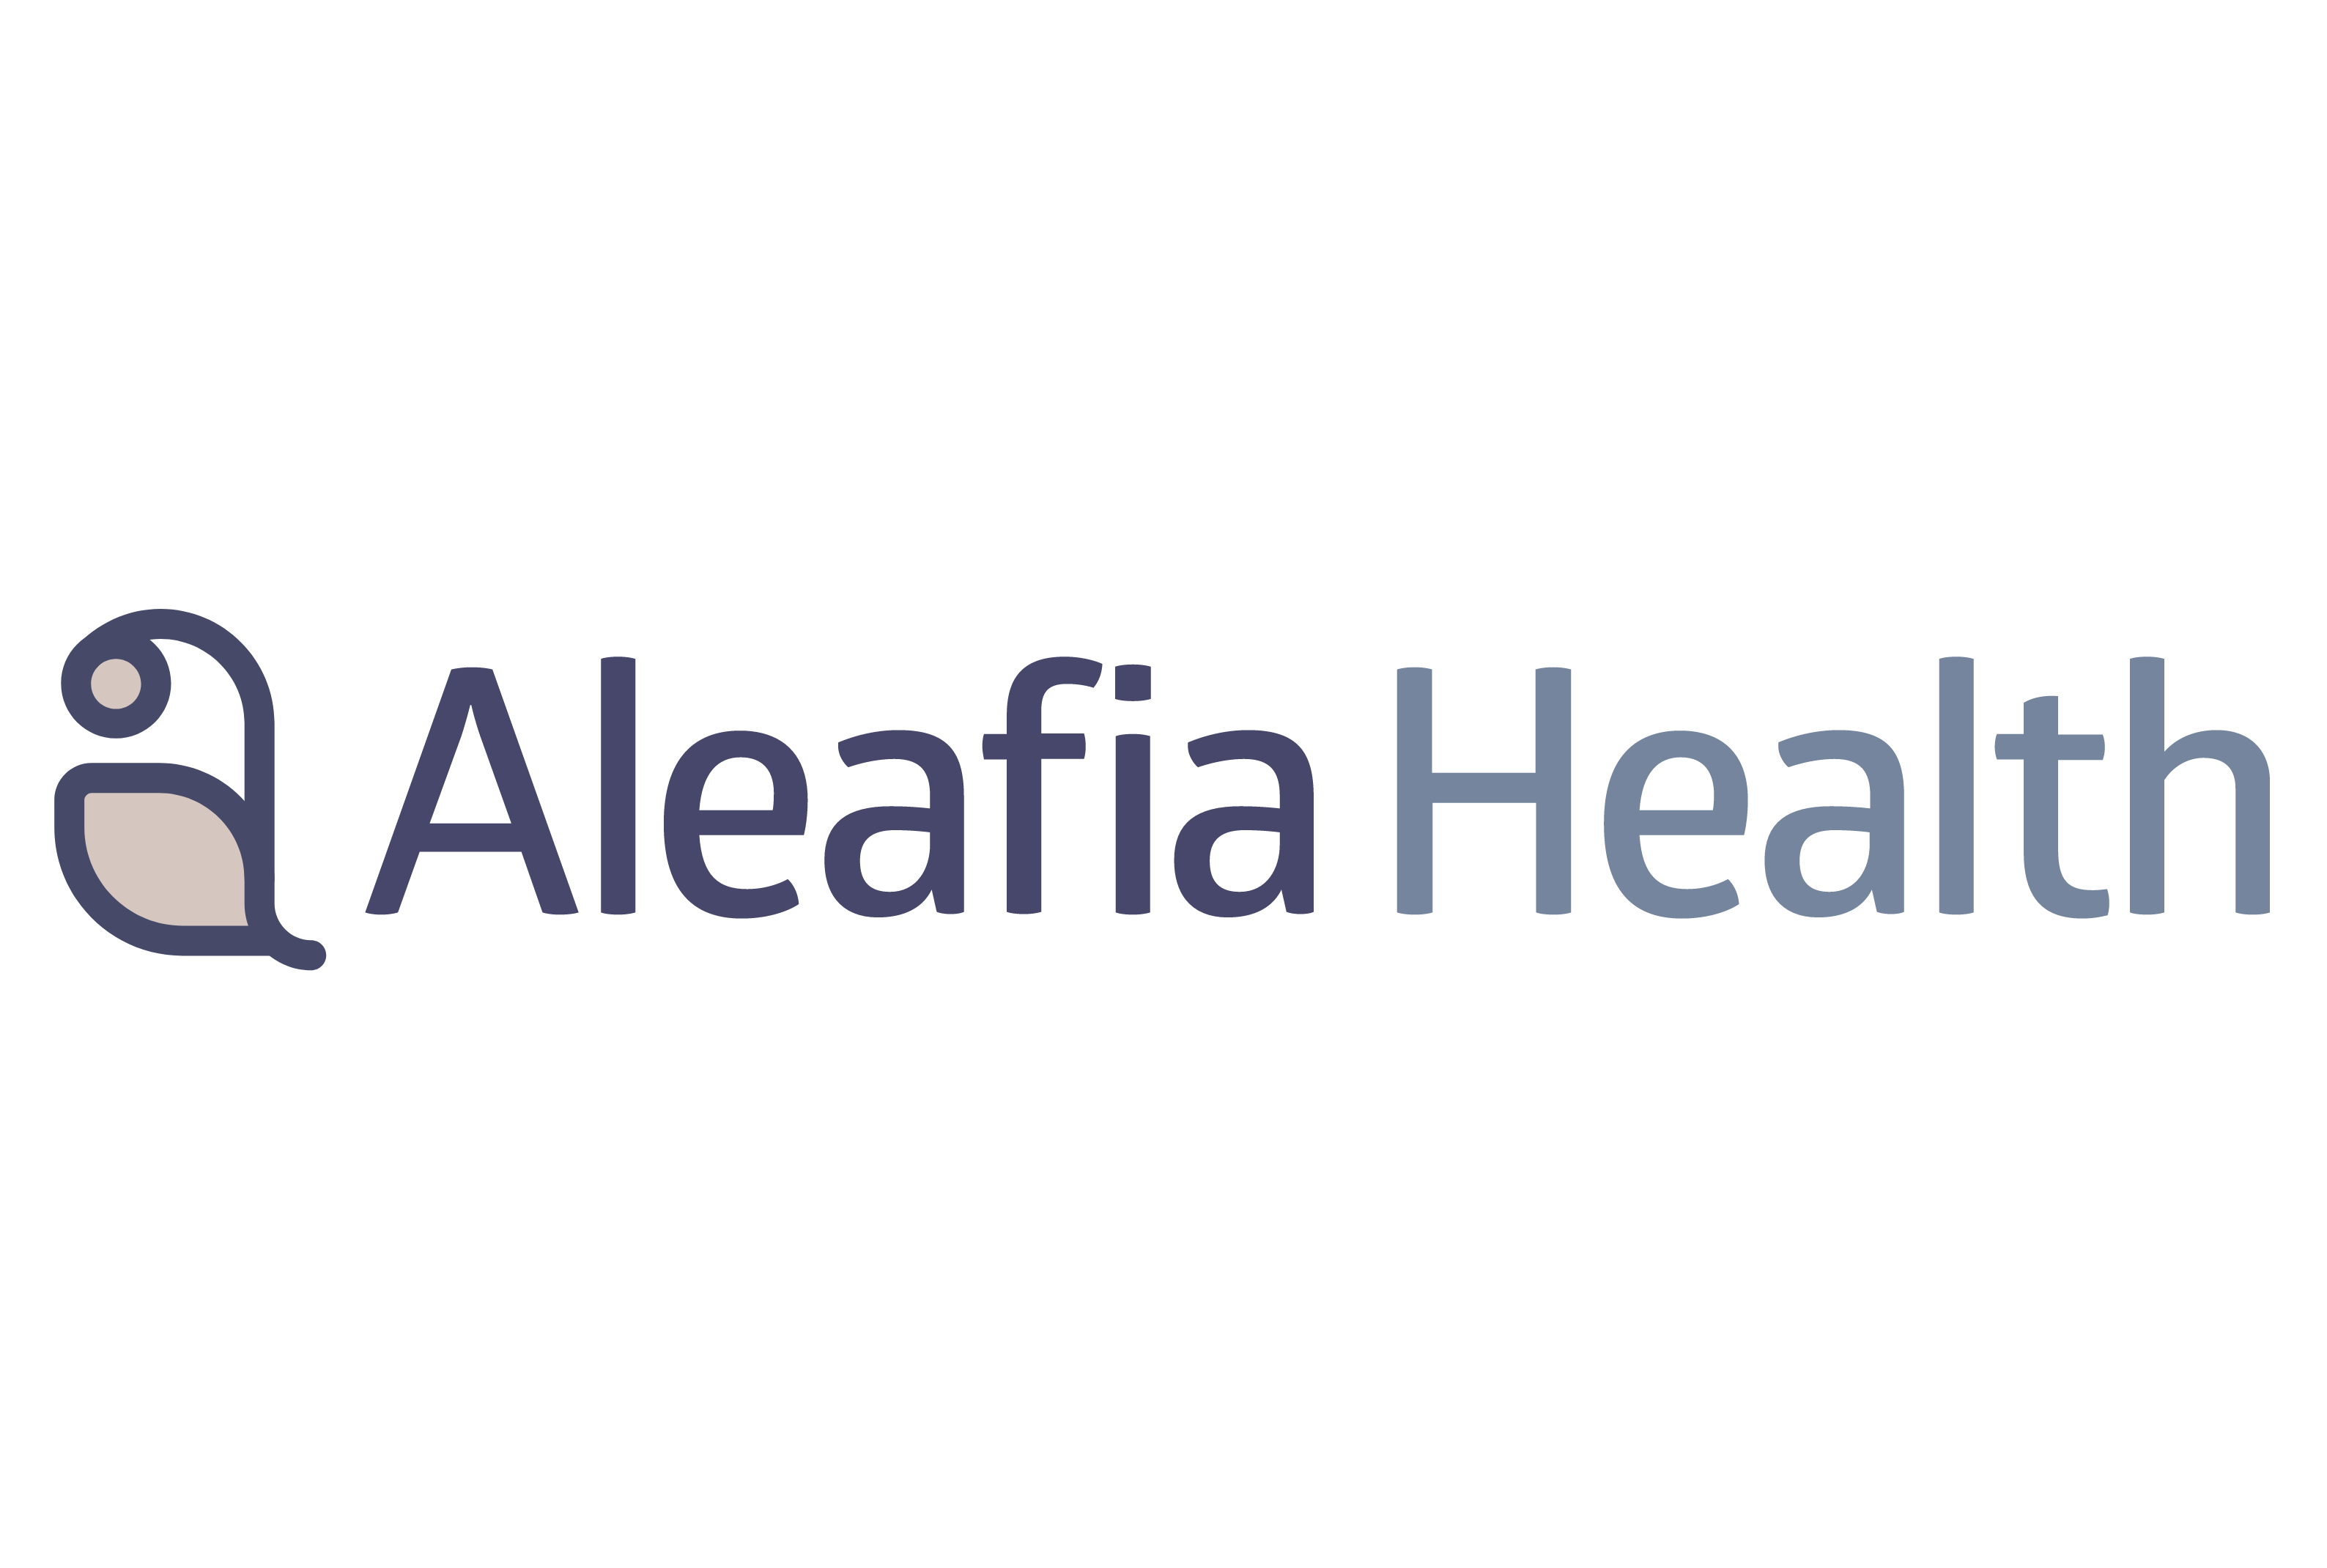 Aleafia Health Announces Termination of Supply Agreement with Aphria Inc.